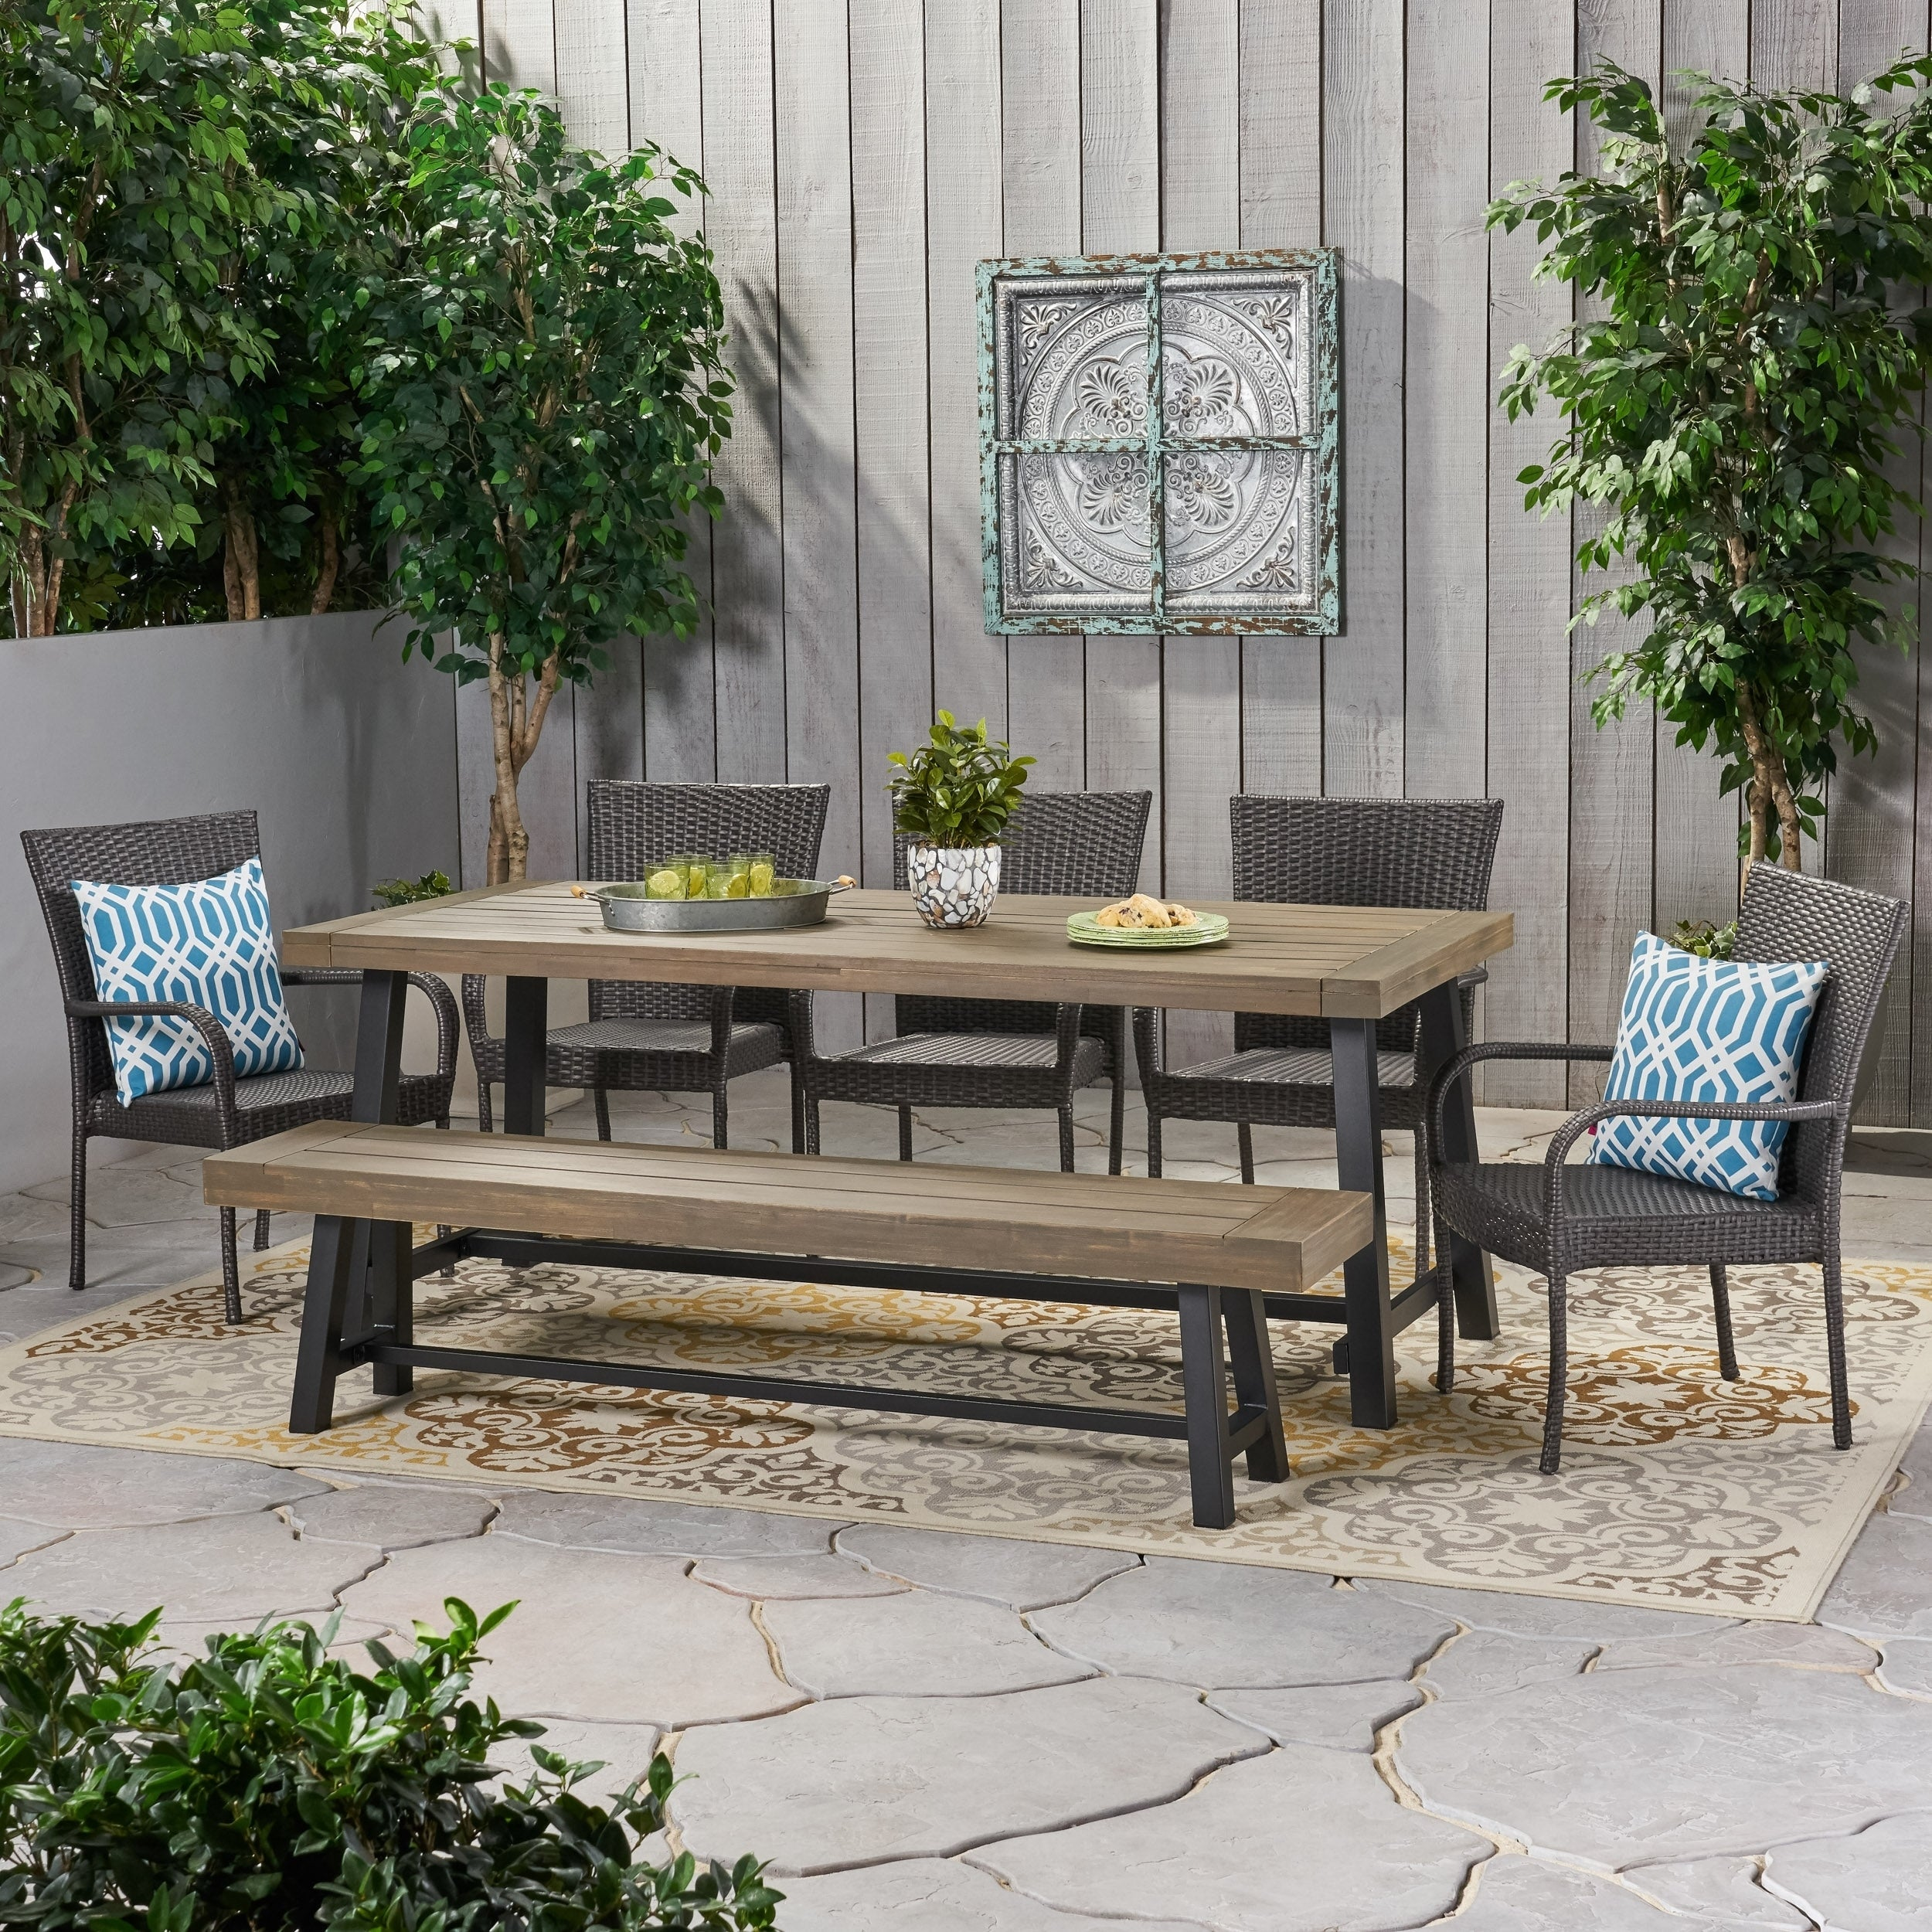 Lyons Outdoor Rustic Acacia Wood 8